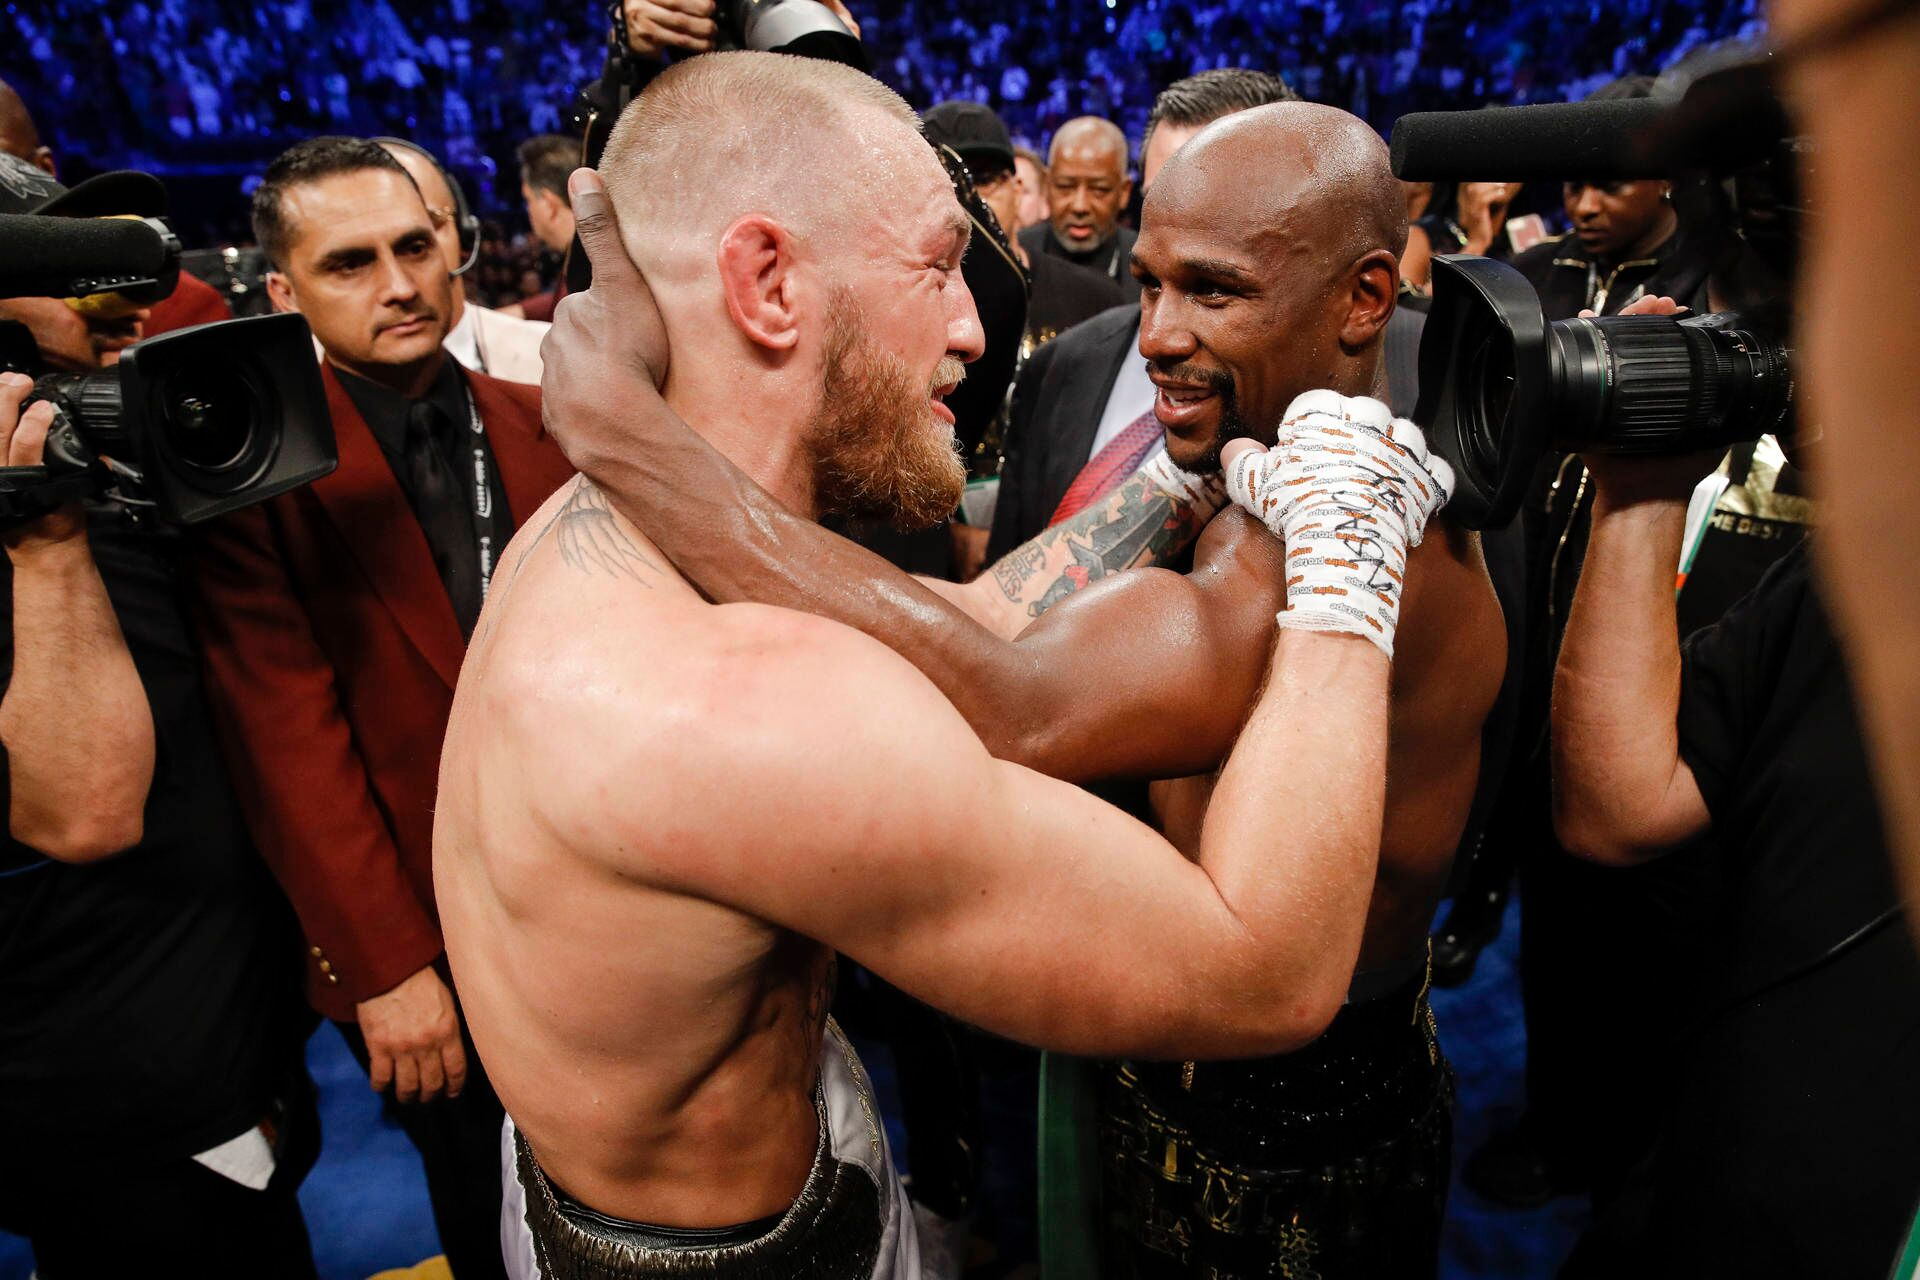 038 Floyd Mayweather vs Conor McGregor - Conor McGregor Wants Floyd Mayweather Jr. Rematch